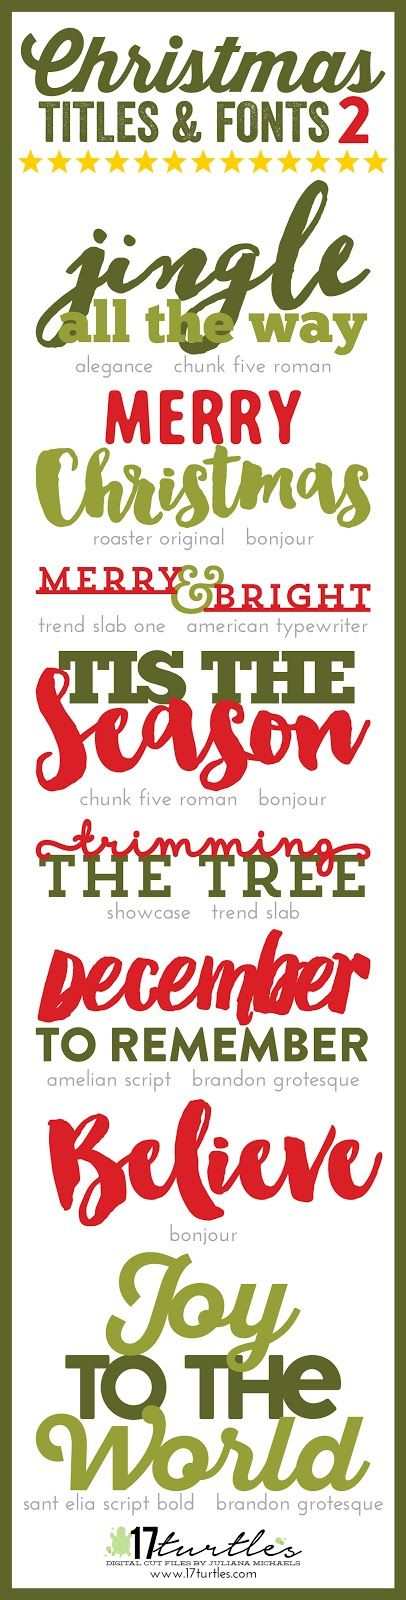 Christmas Titles and Fonts 2  by Juliana Michaels 17turtles.com                                                                                                                                                      More